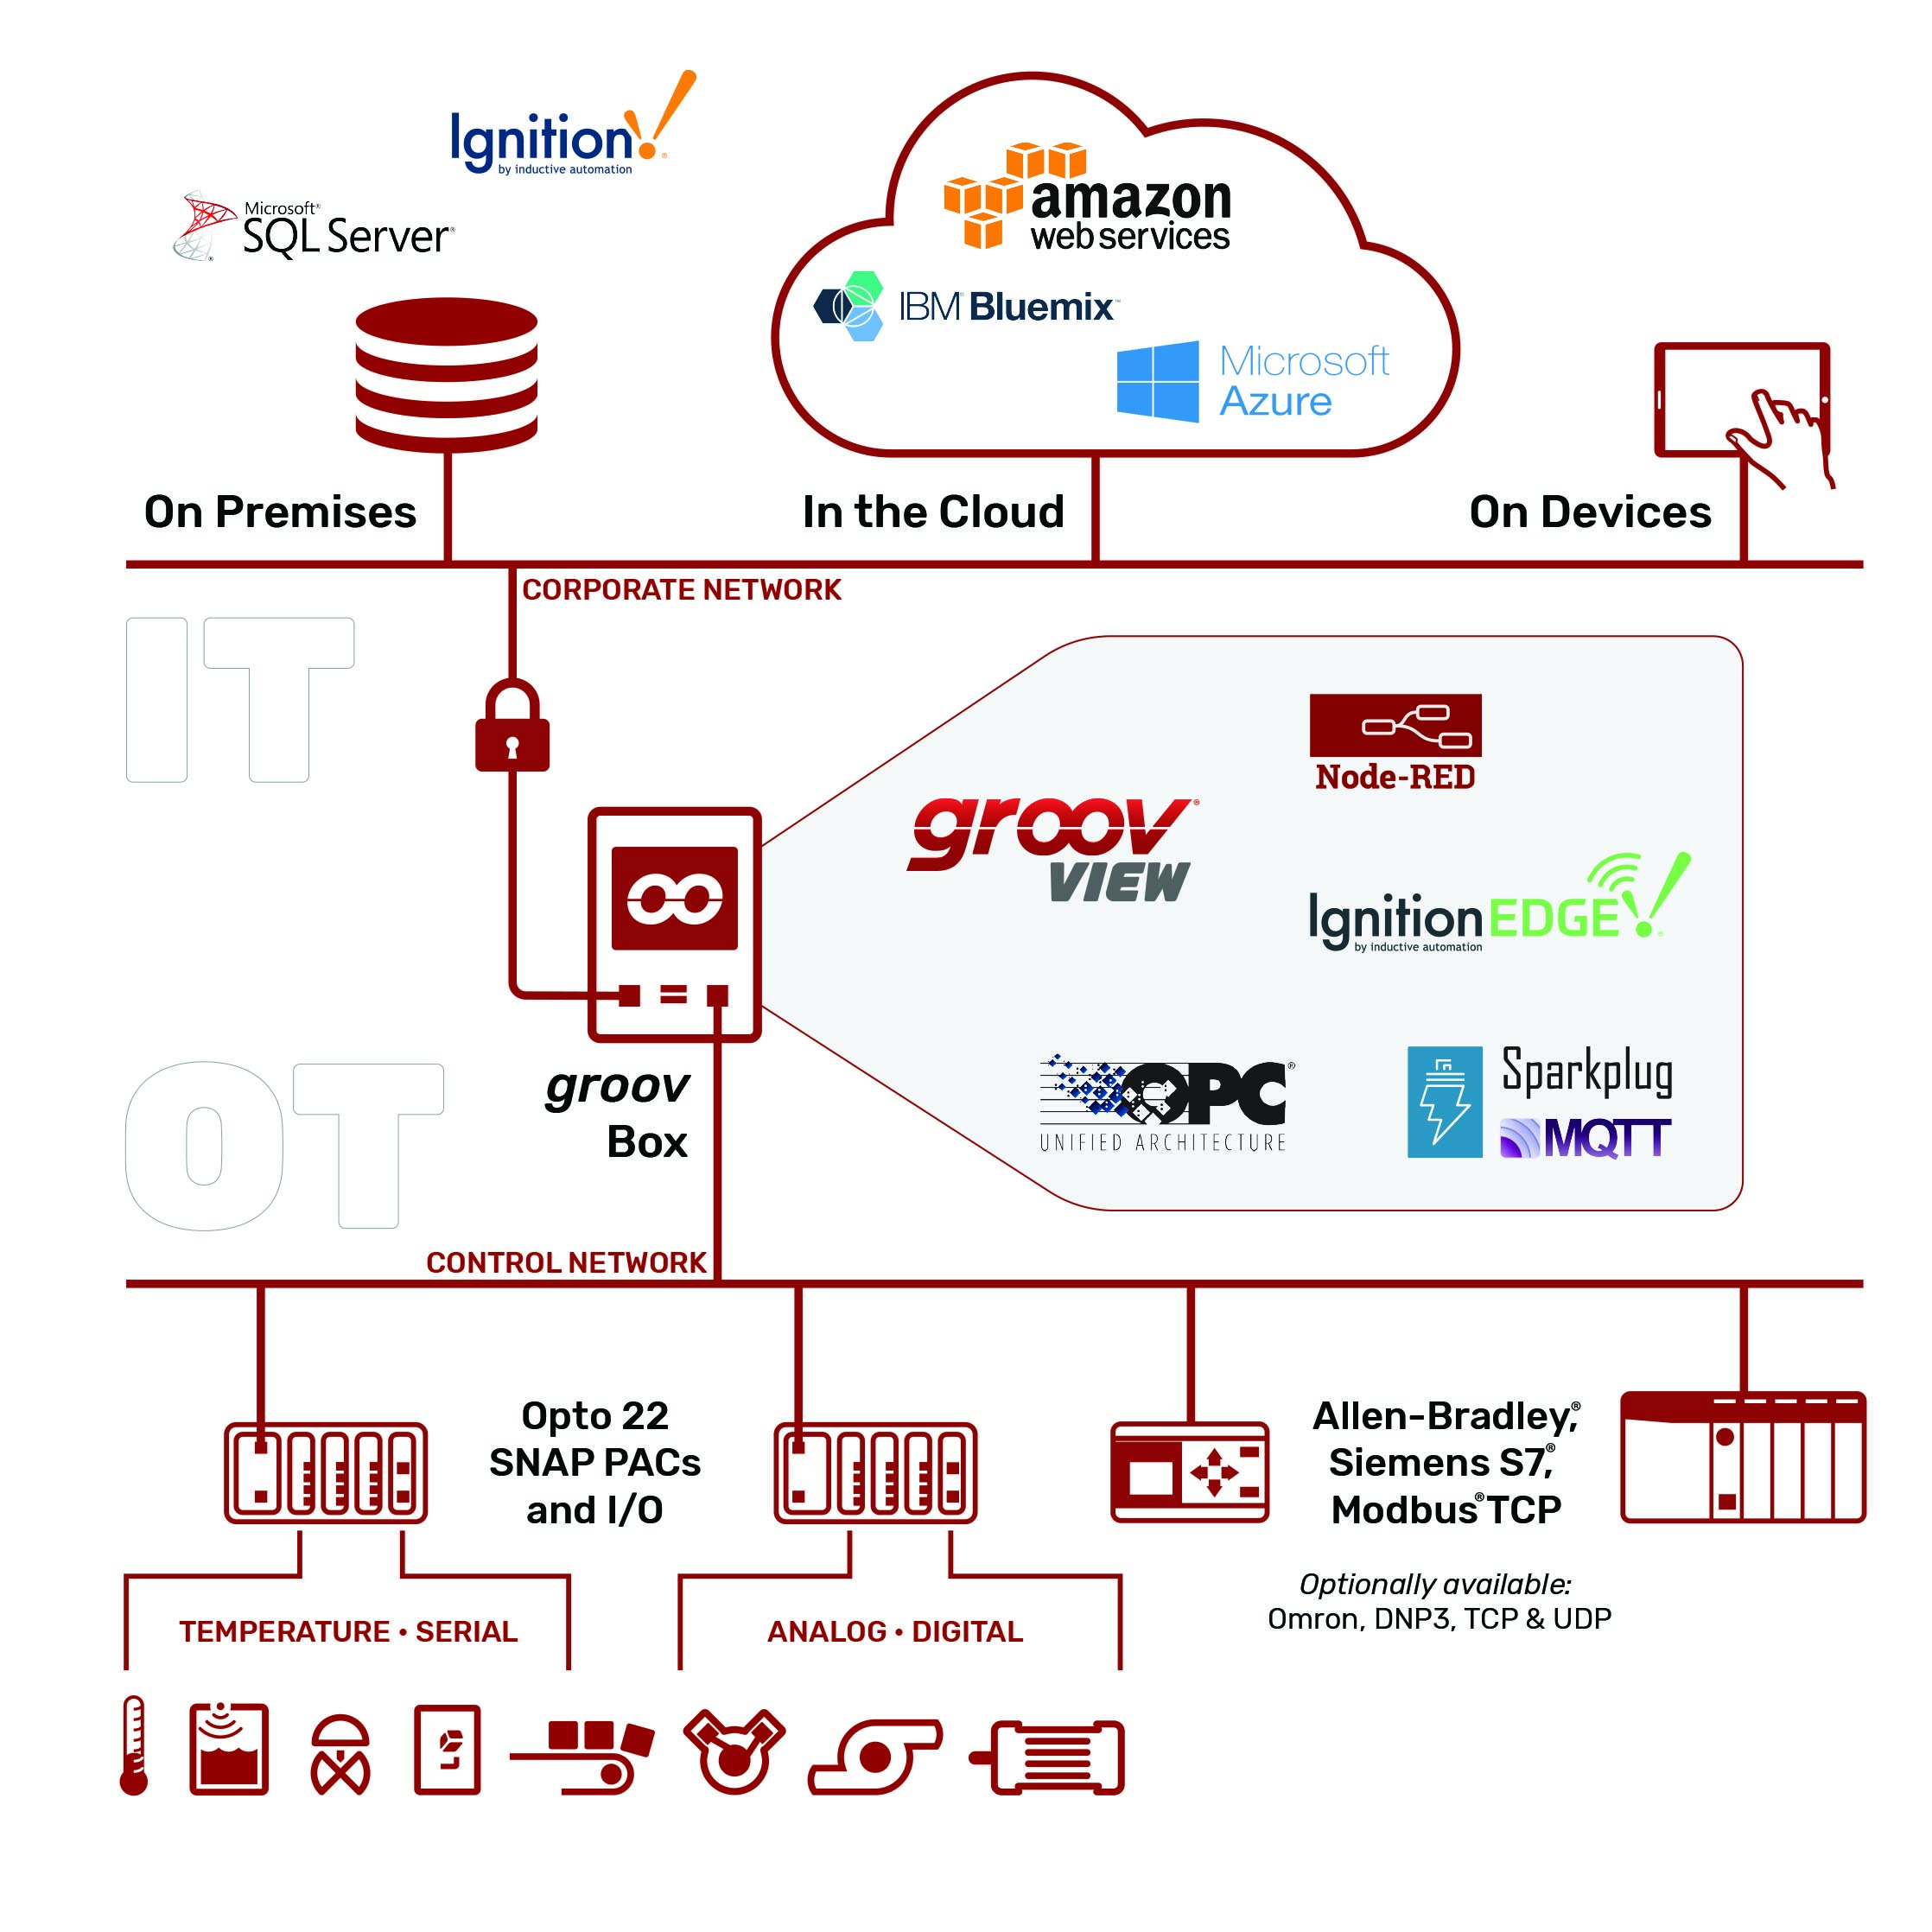 Connect your OT sytems to your IT systems with groov Ignition Edge